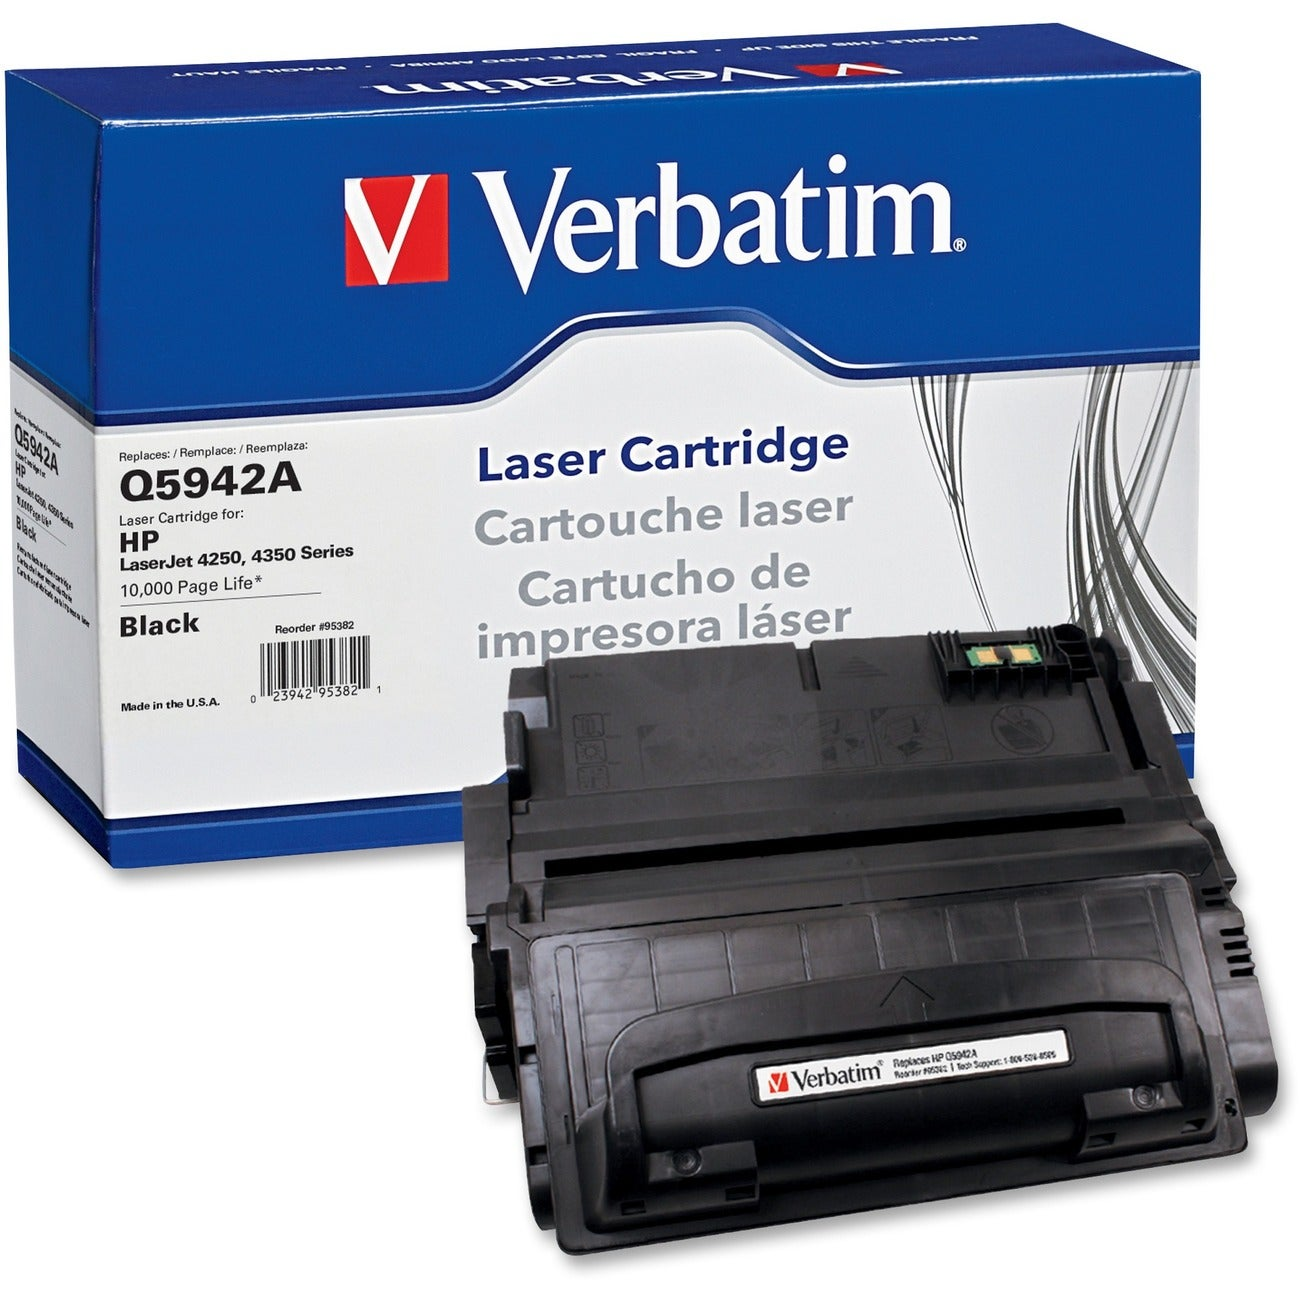 Verbatim Toner Cartridge (Black) - Thumbnail 0